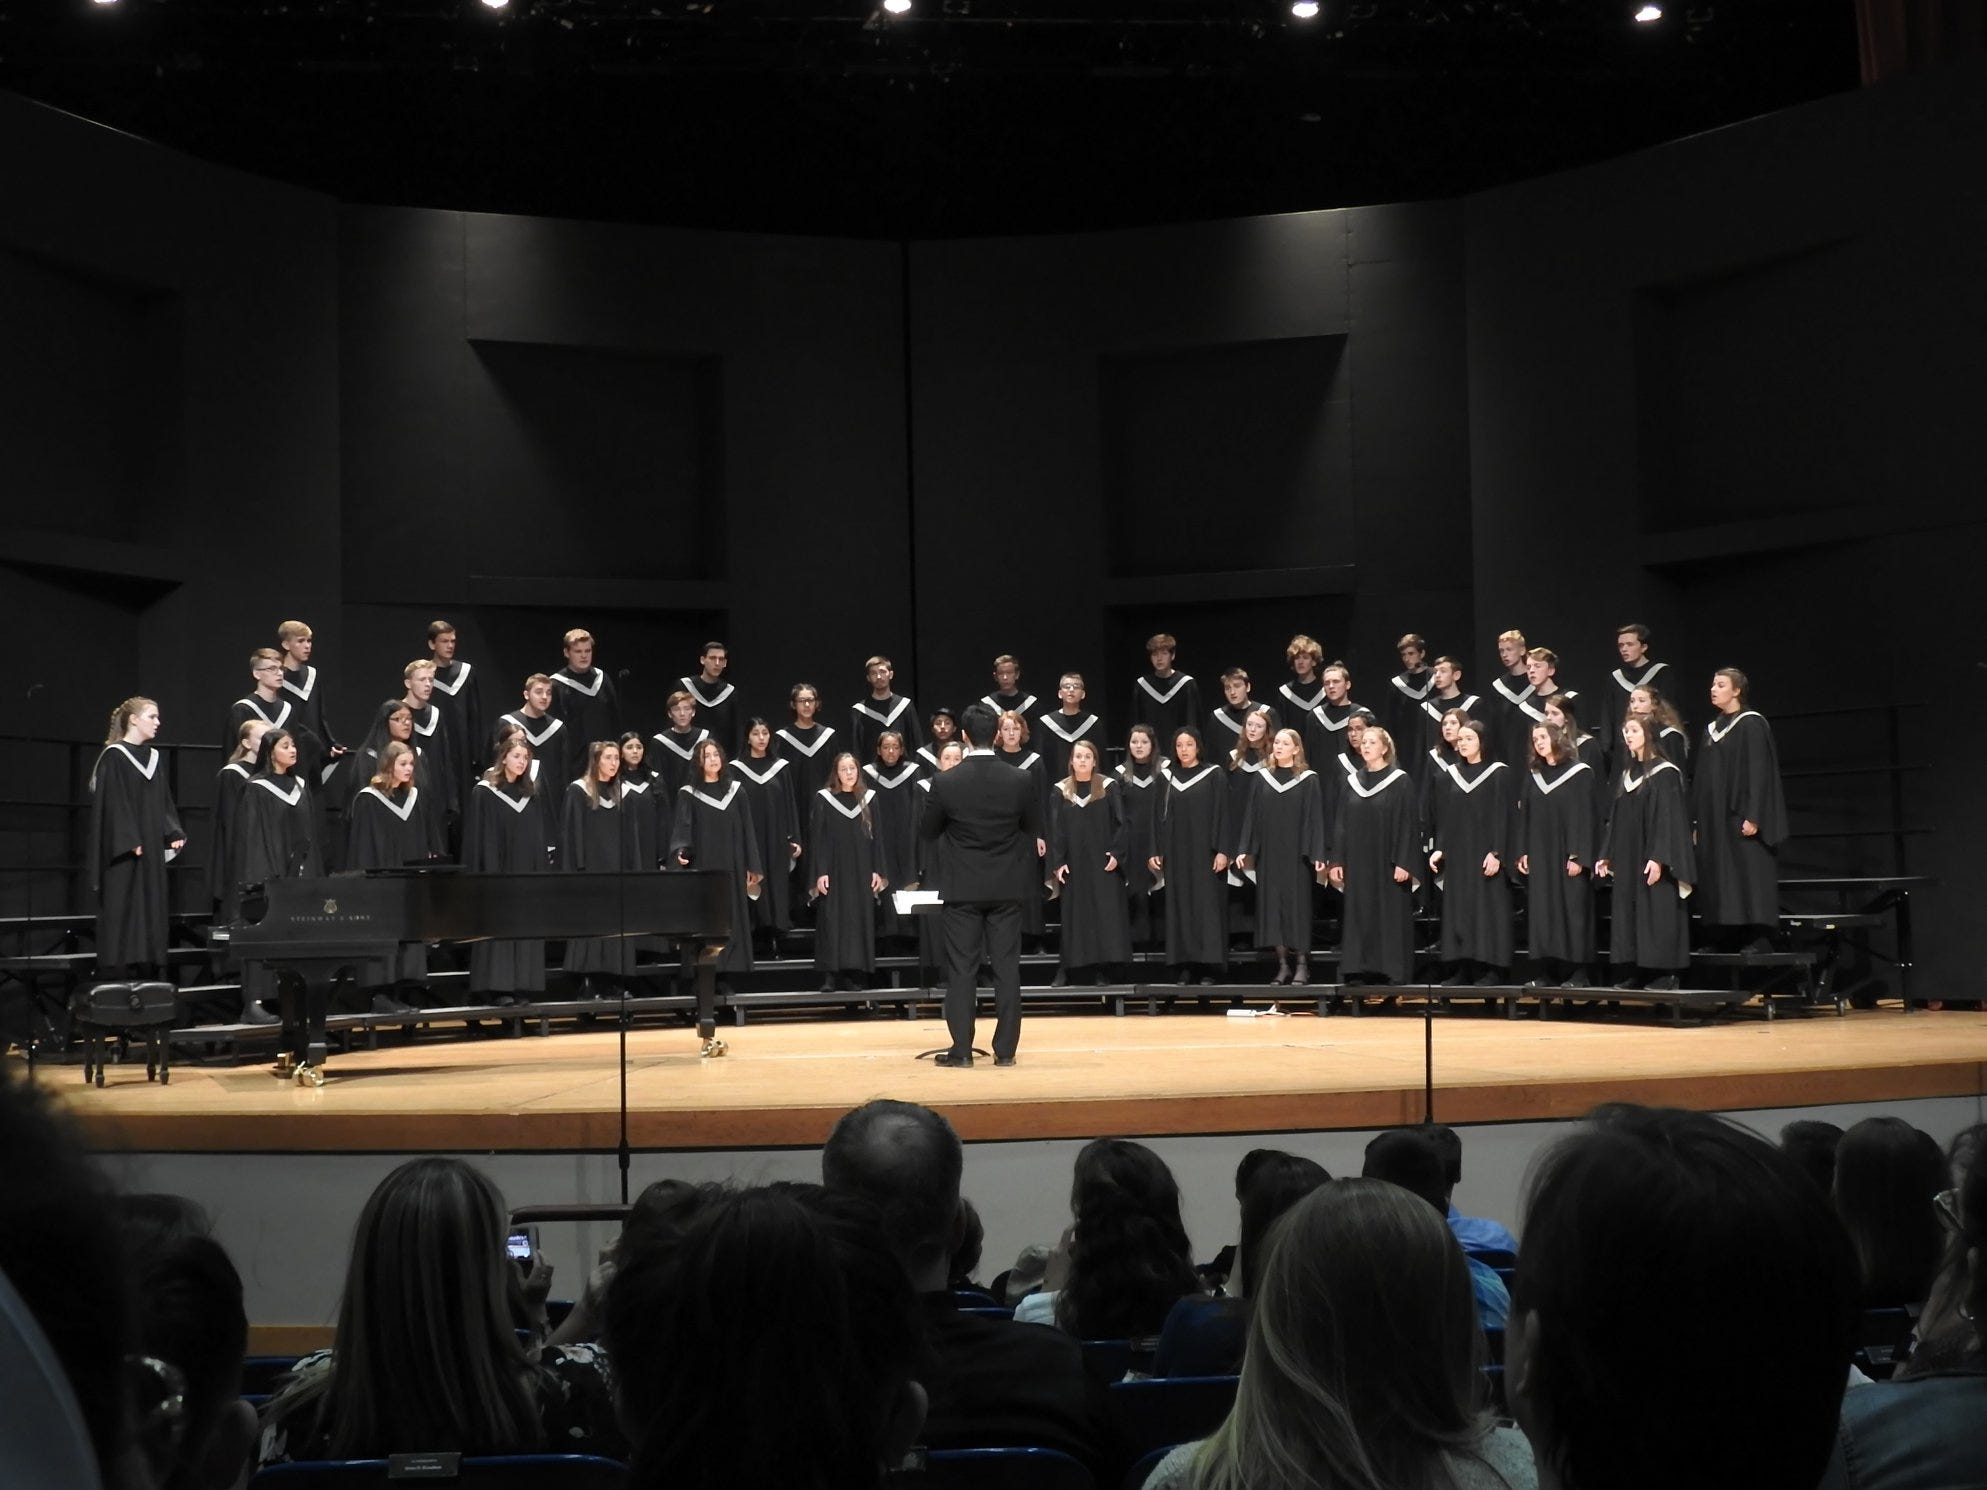 Silverton High School's choir, under the direction of Cole Haole‐Valenzuela, performs at the OSAA Choir State Championships at Oregon State University in Corvallis on April 30, 2019.